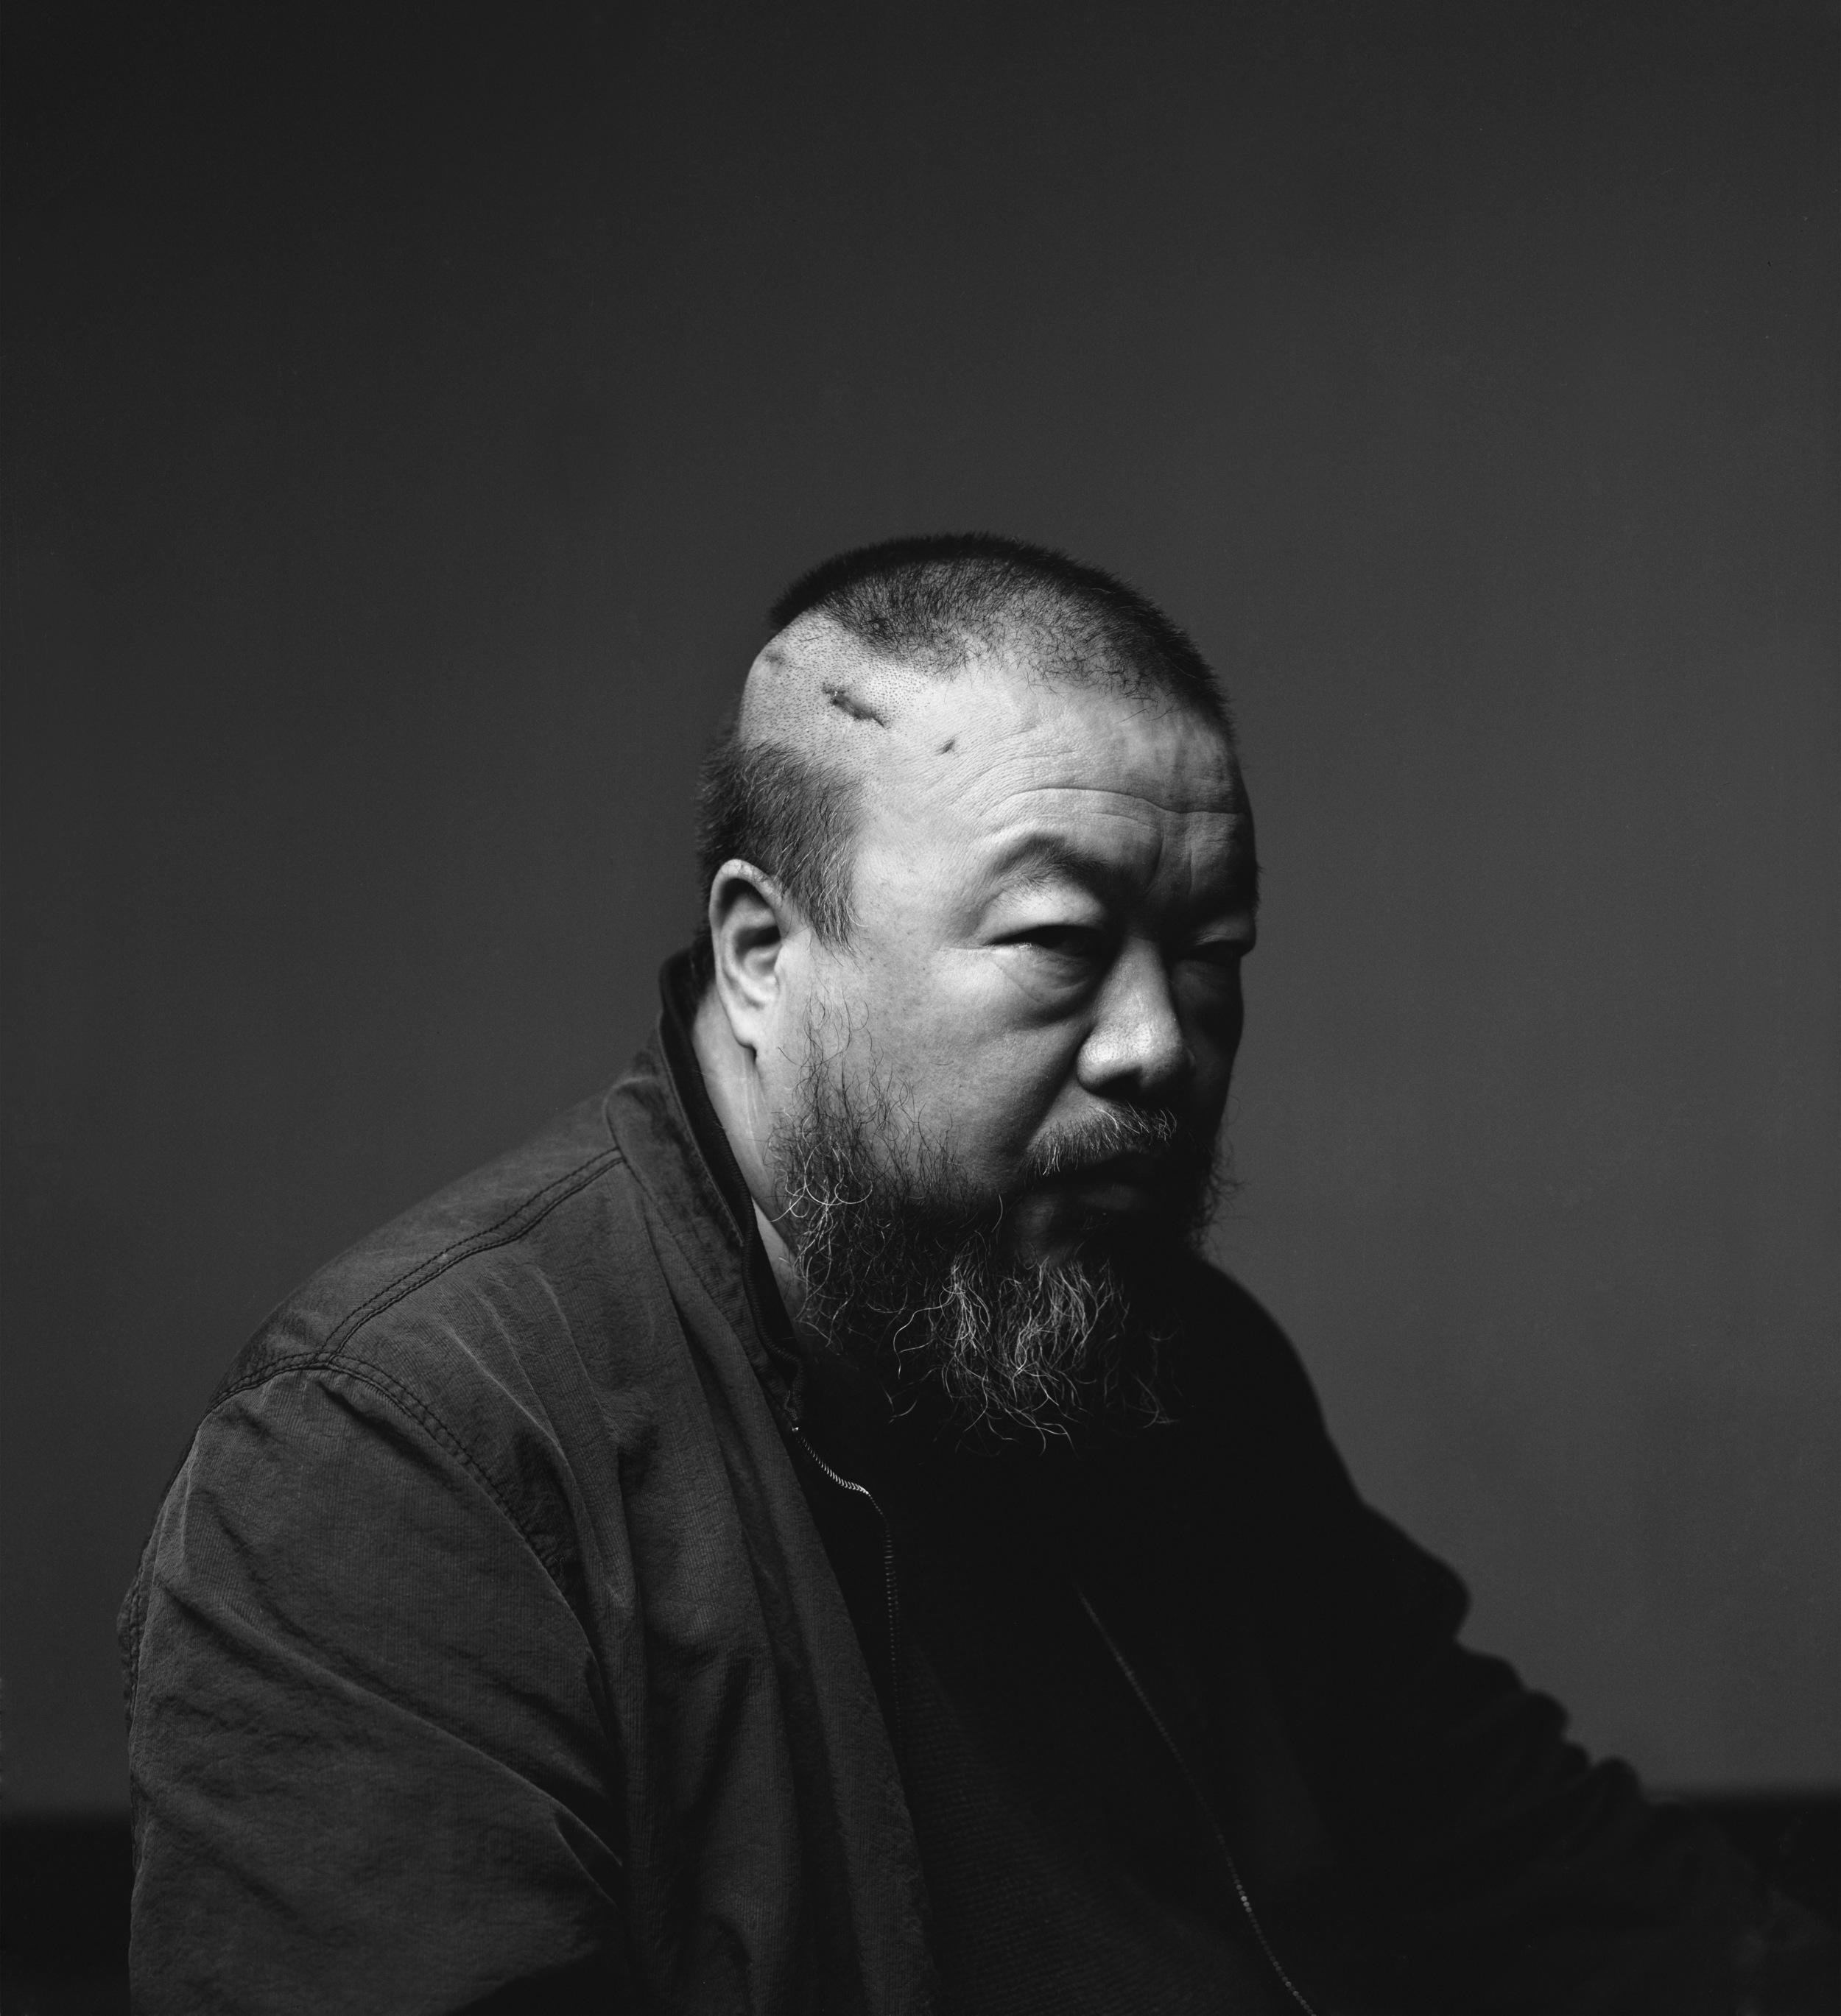 A portrait of artist Ai Weiwei